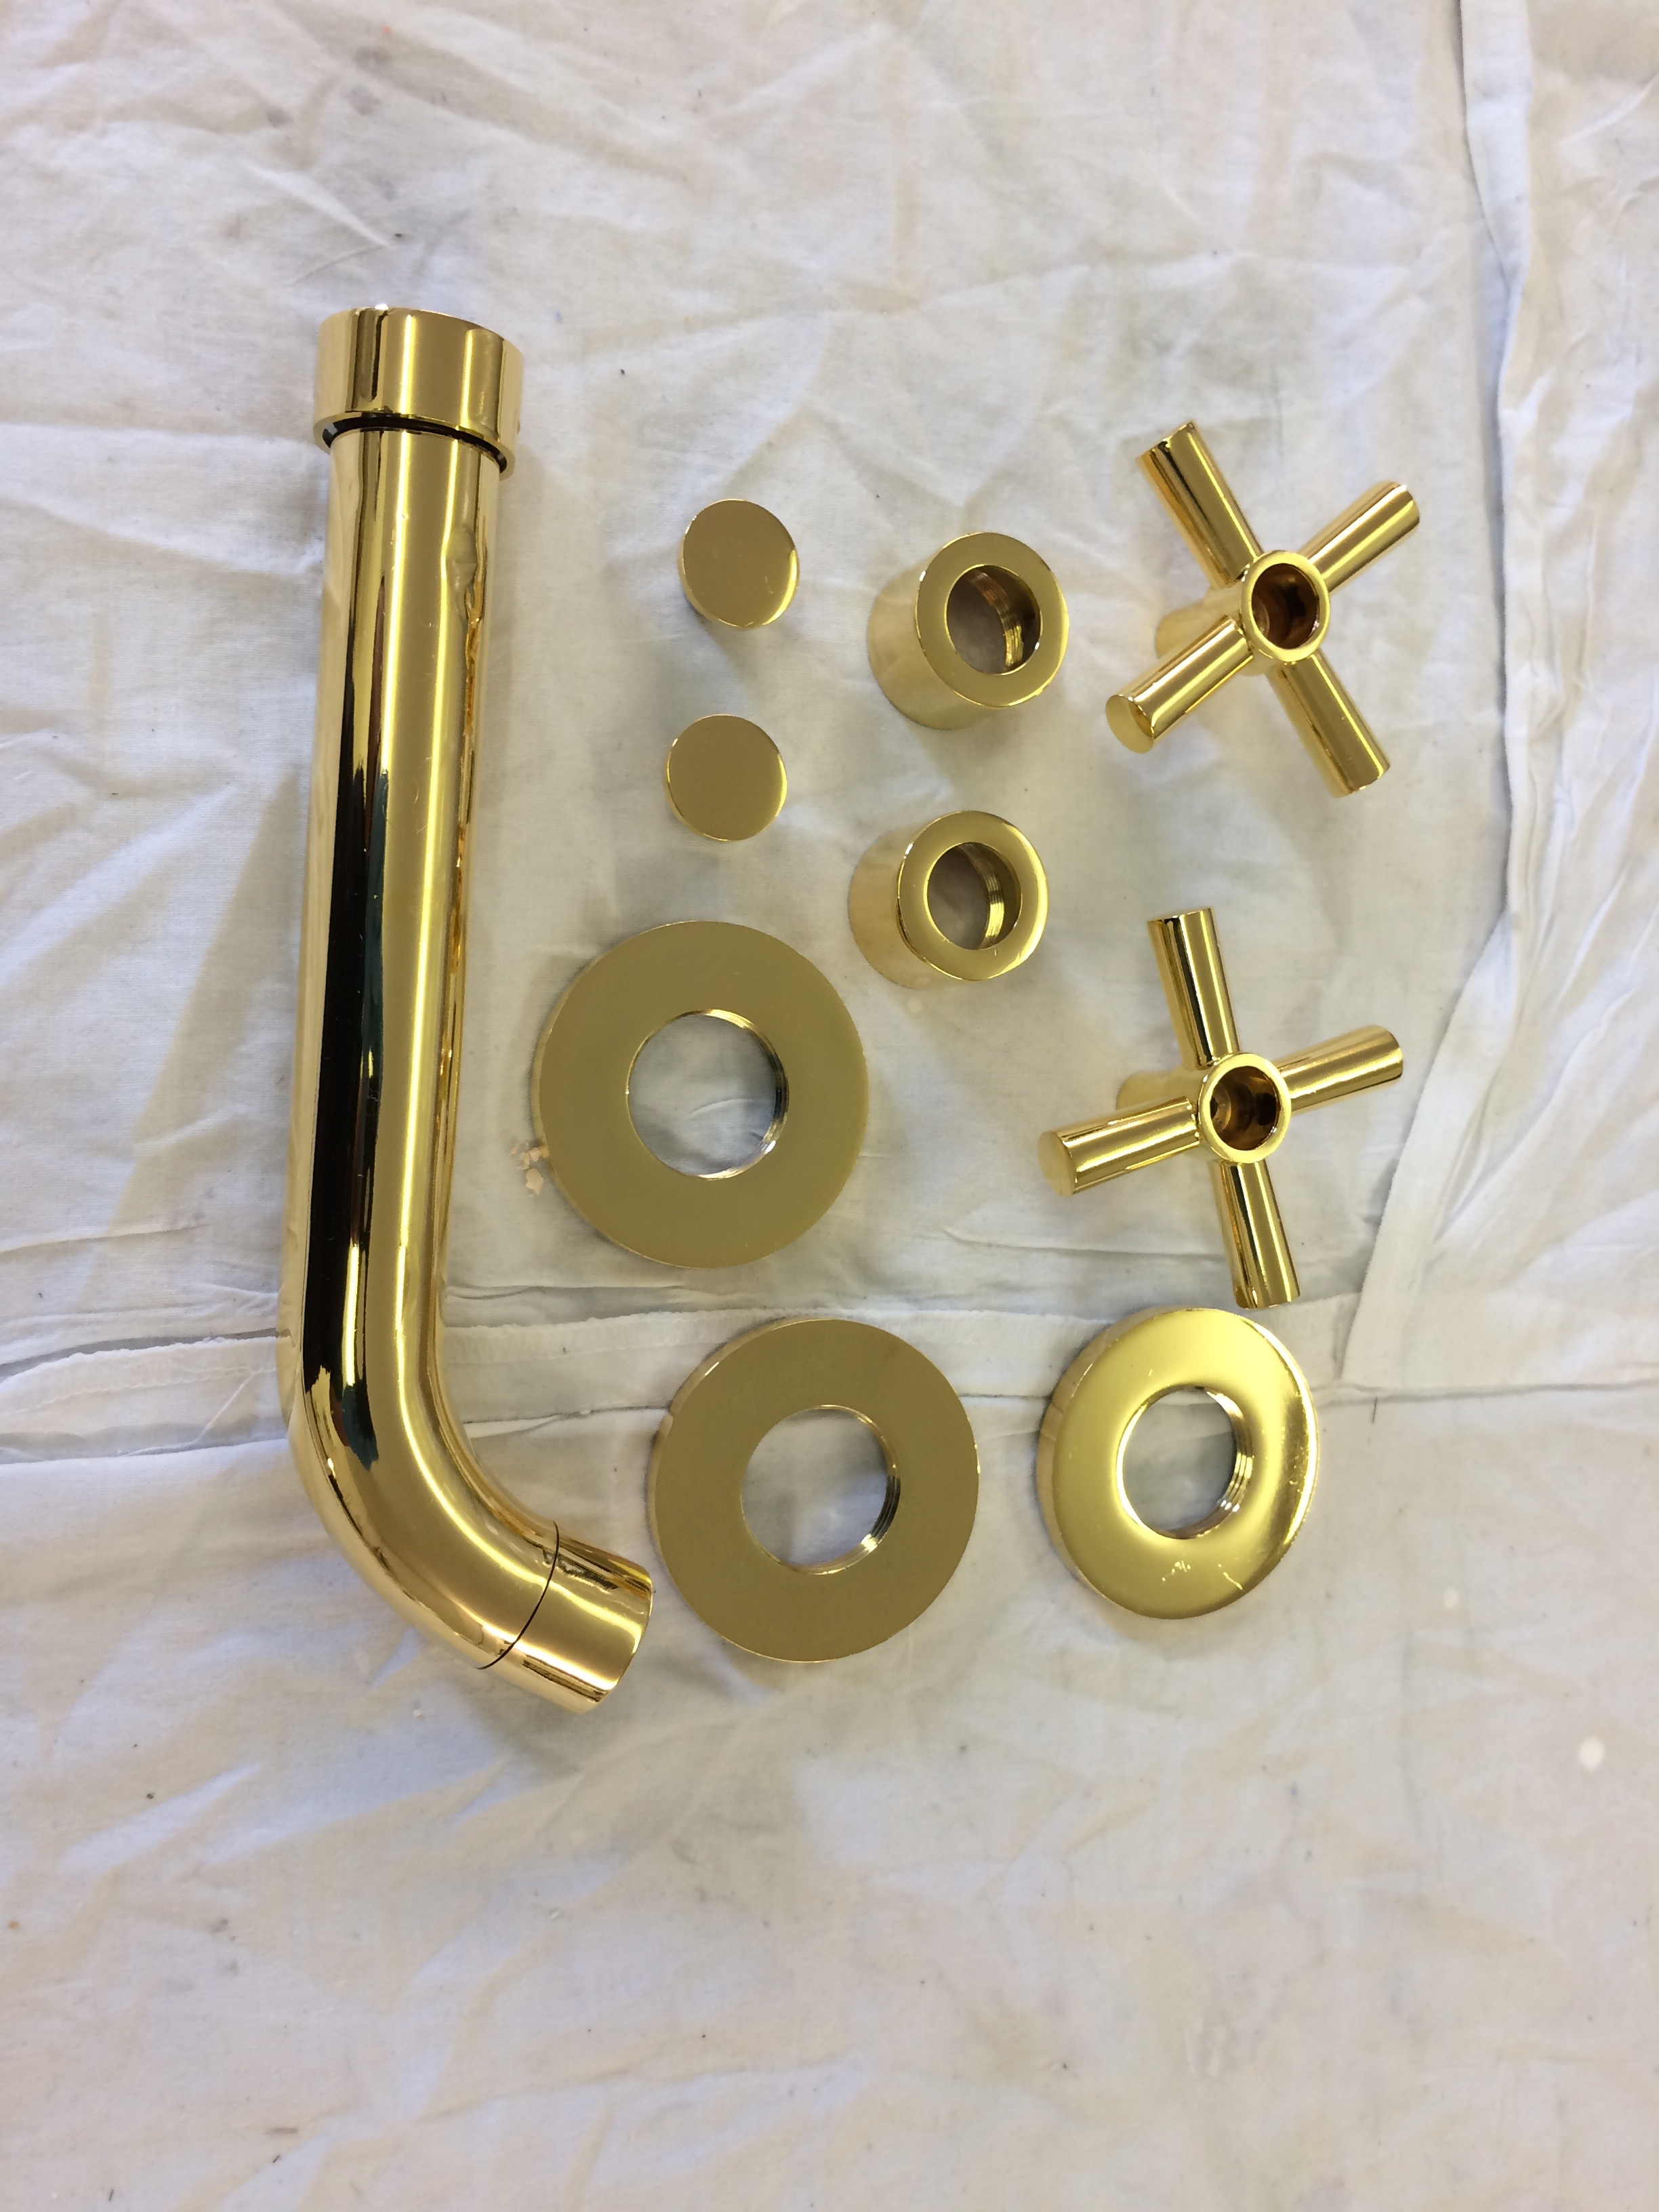 nickle and gold plating of taps